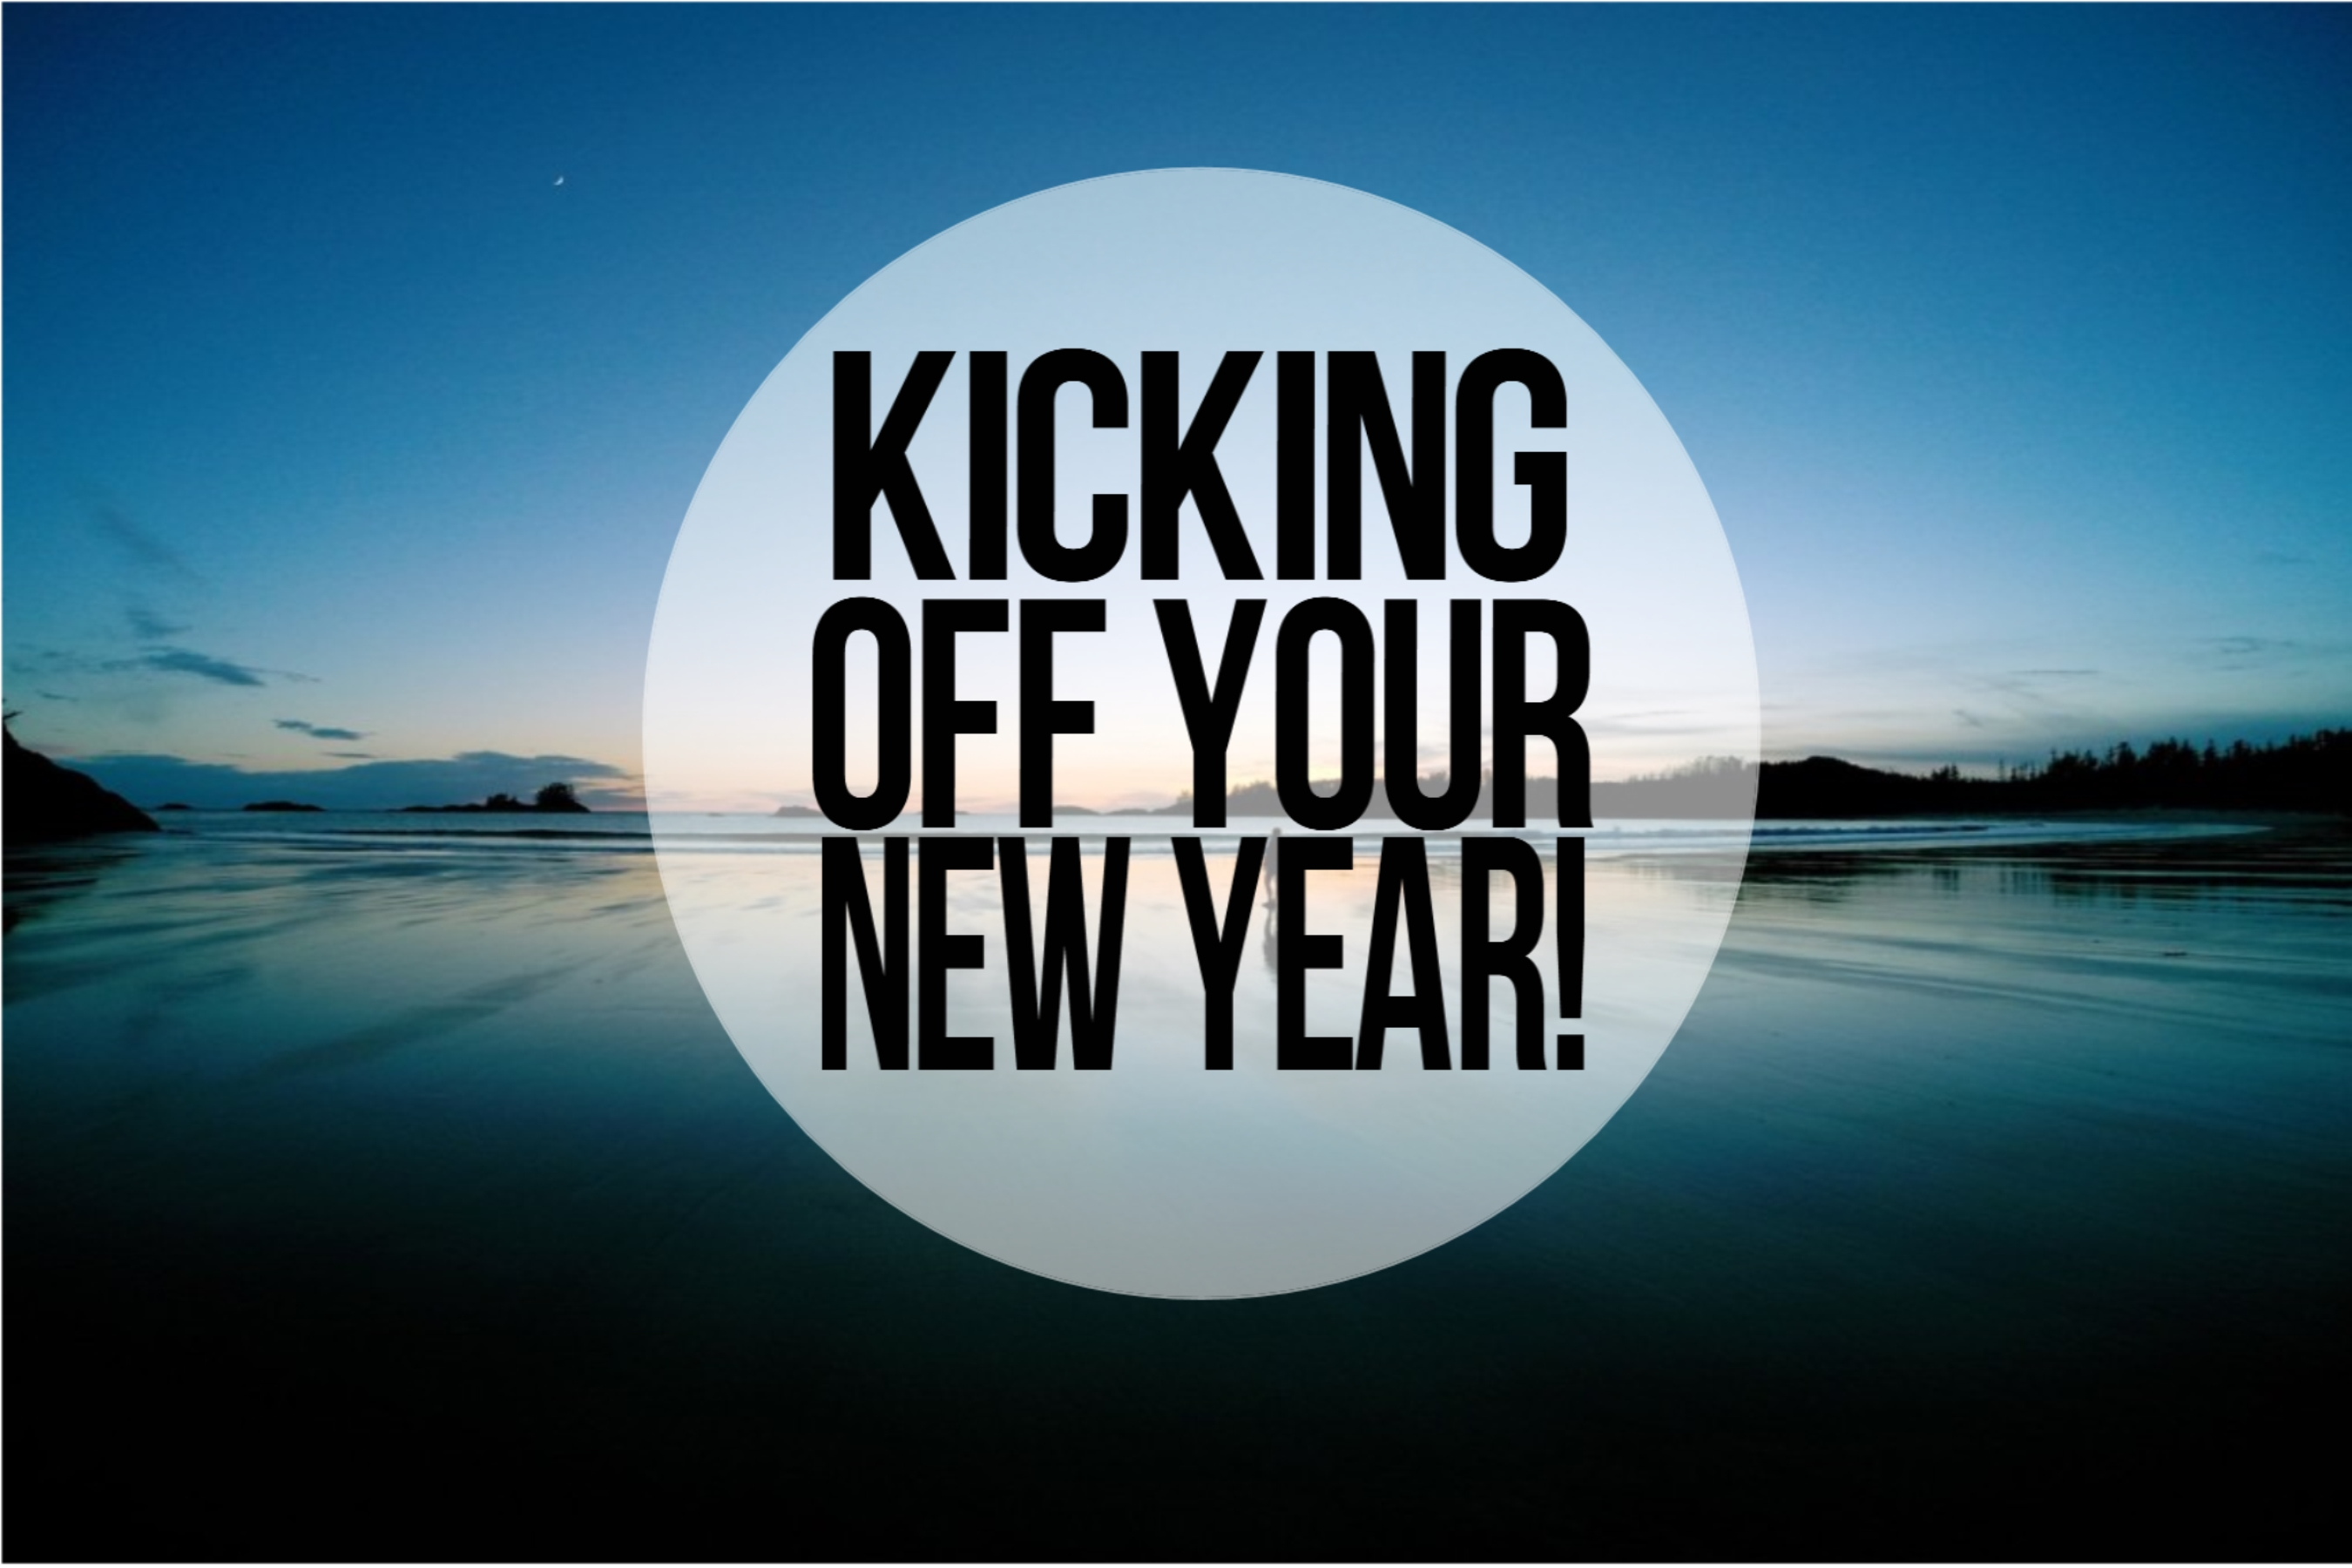 Kicking-Off-Your-New-Year